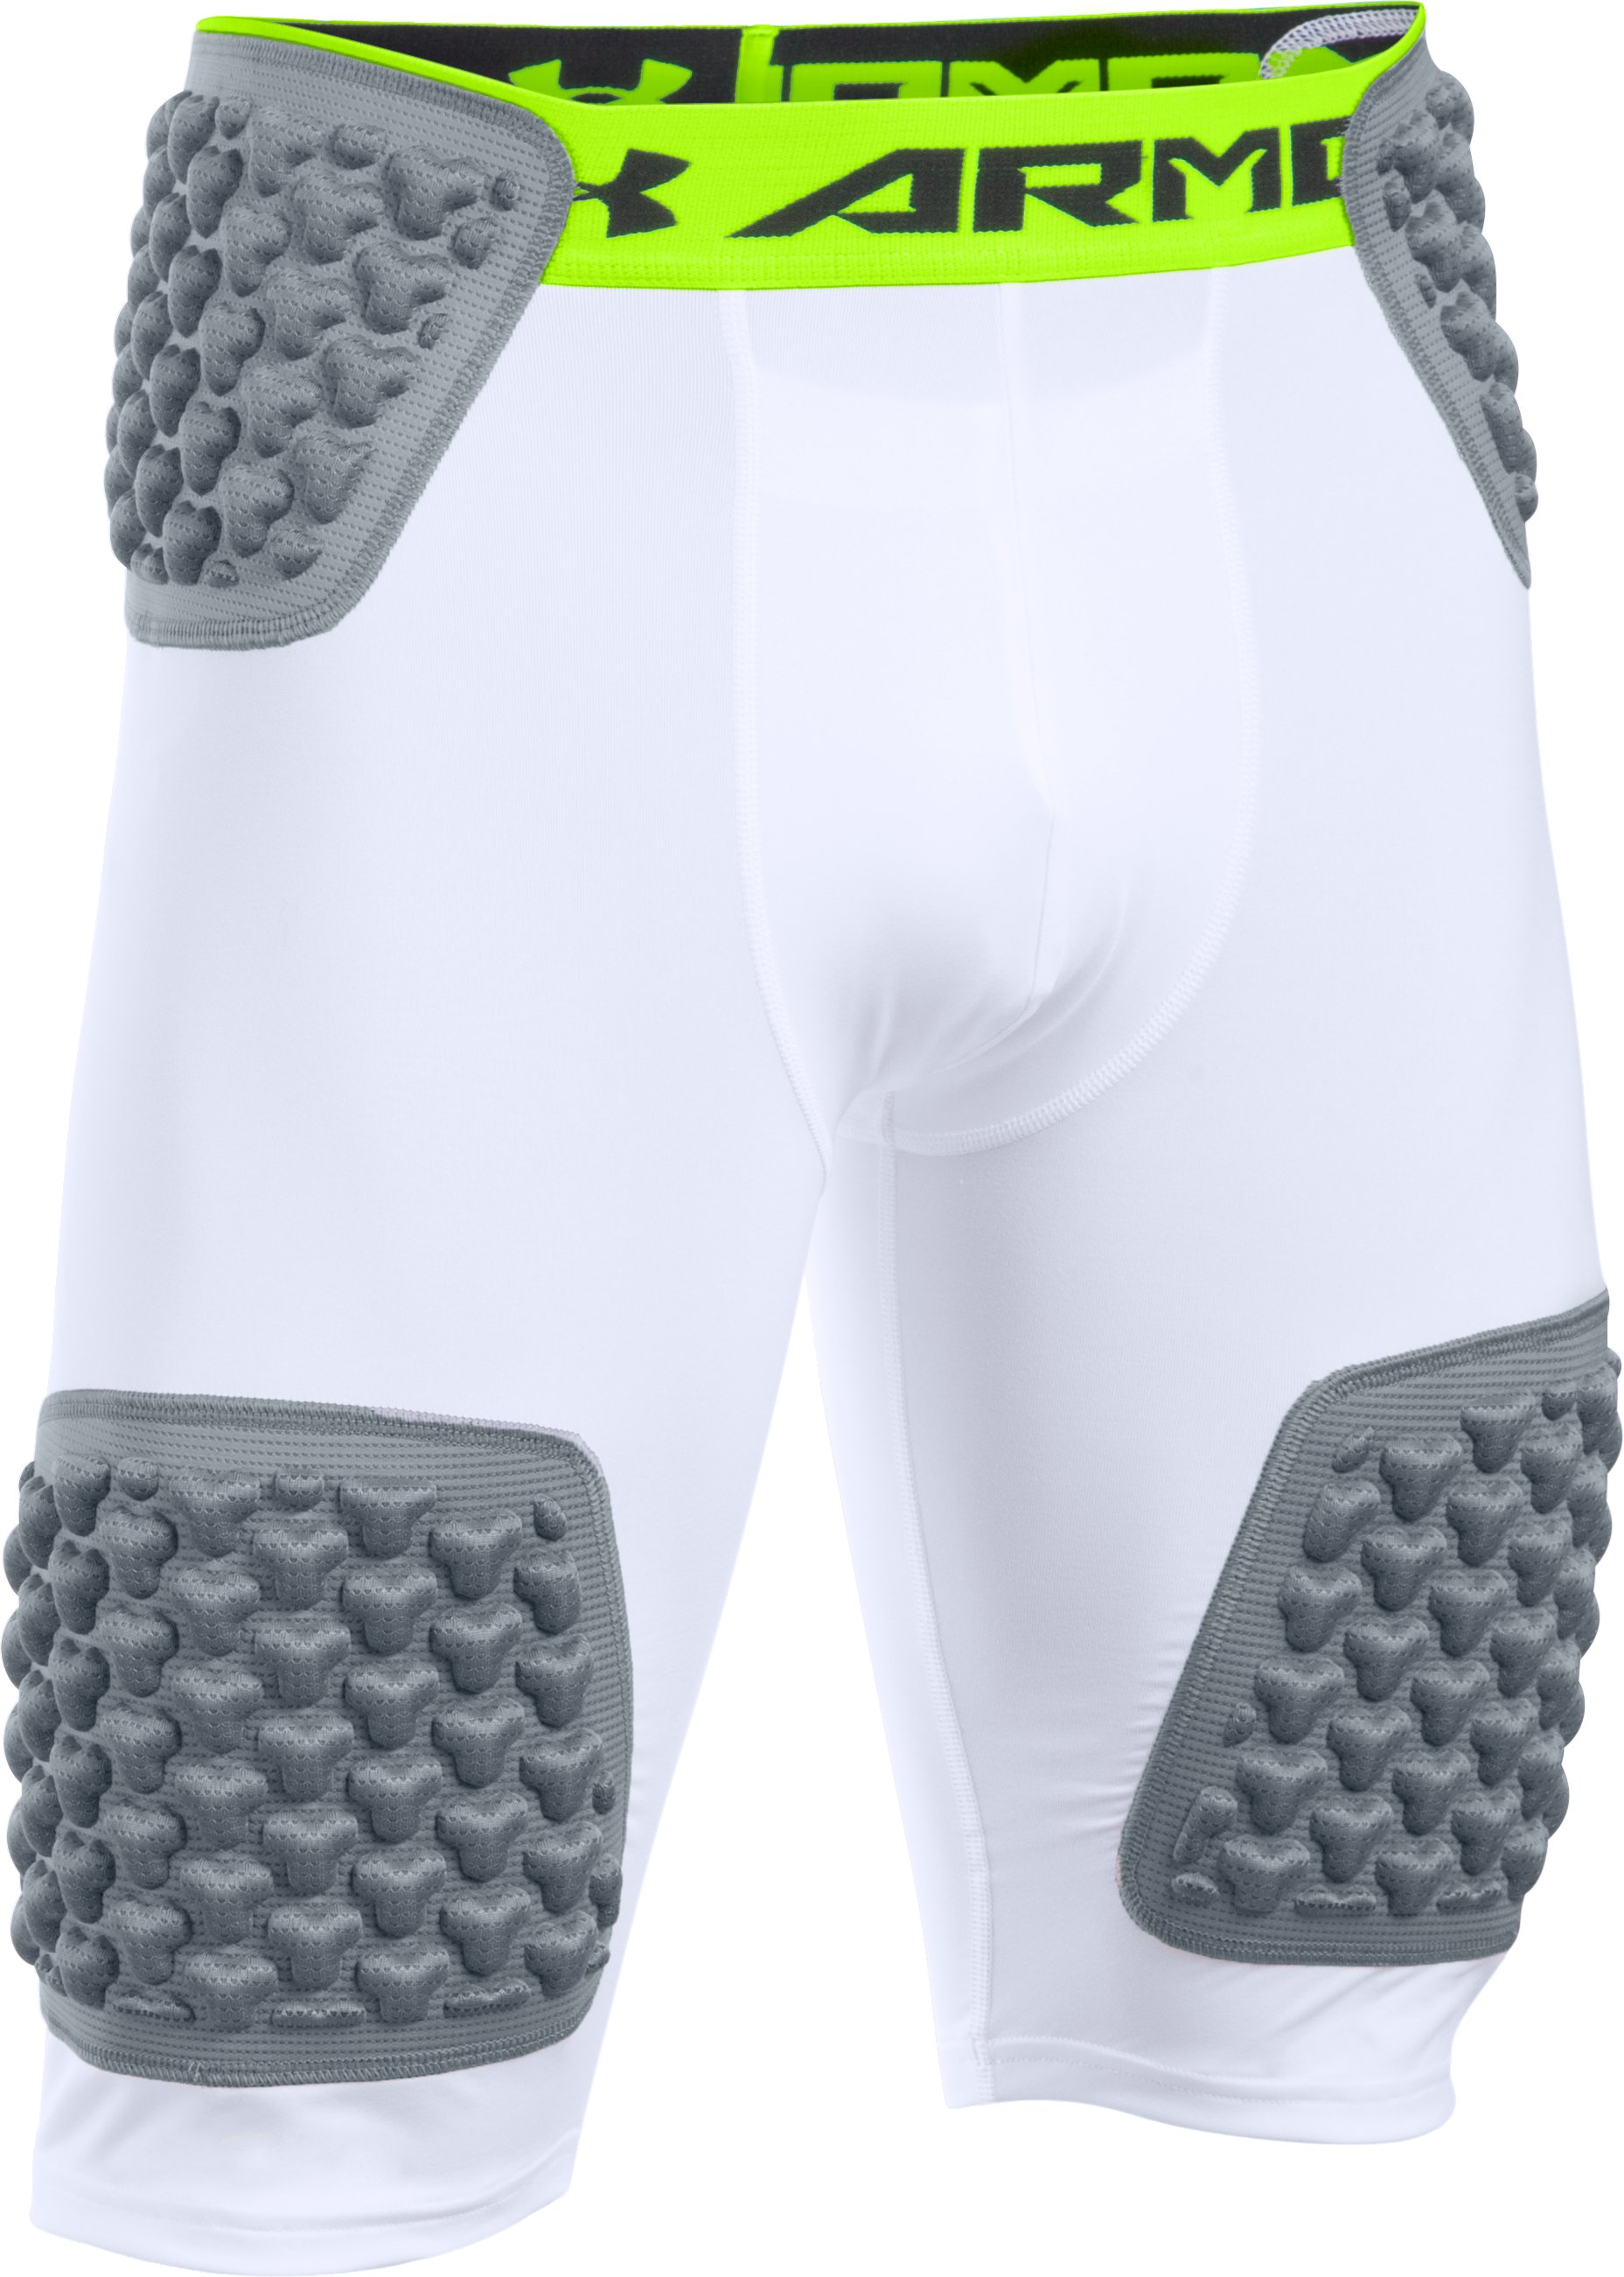 Men's Gameday Armour® Team Girdle, White, undefined